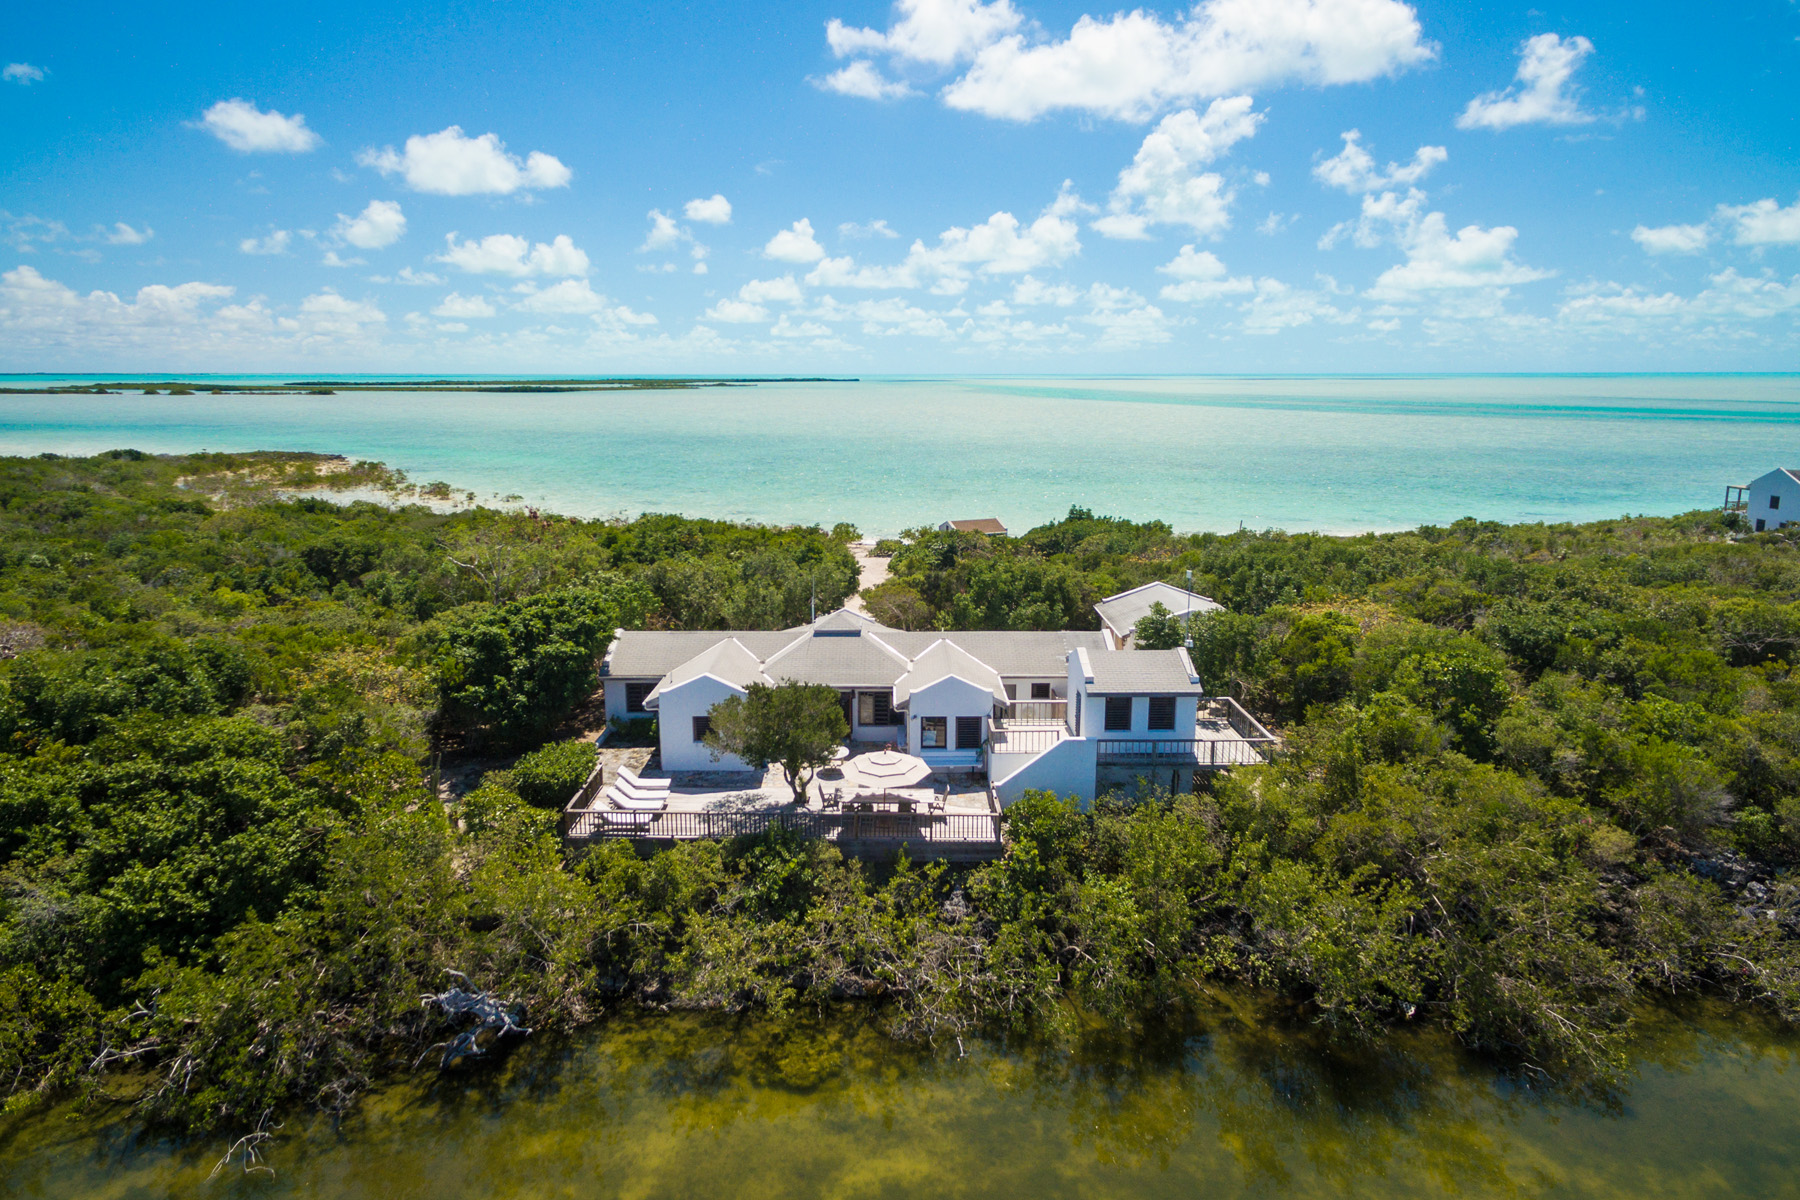 Single Family Home for Sale at Boat House Cottage on Pine Cay Beachfront Pine Cay, Pine Cay TCI Turks And Caicos Islands